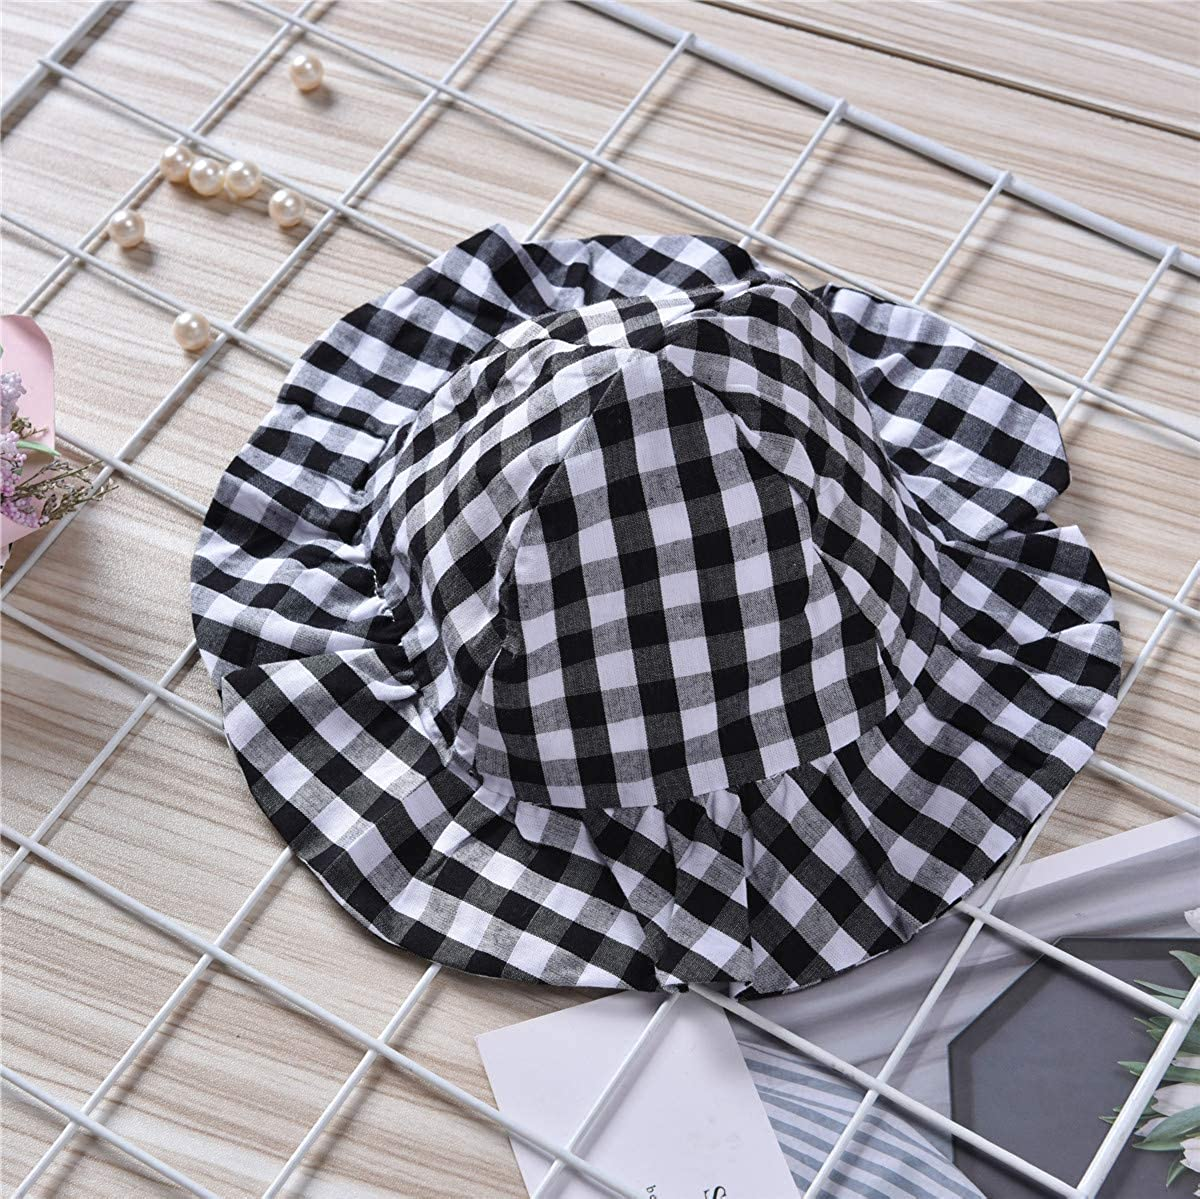 2Pcs Baby Girls Toddler Black White Plaid Ruffle Peplum Outfit Hat Pant Short Set